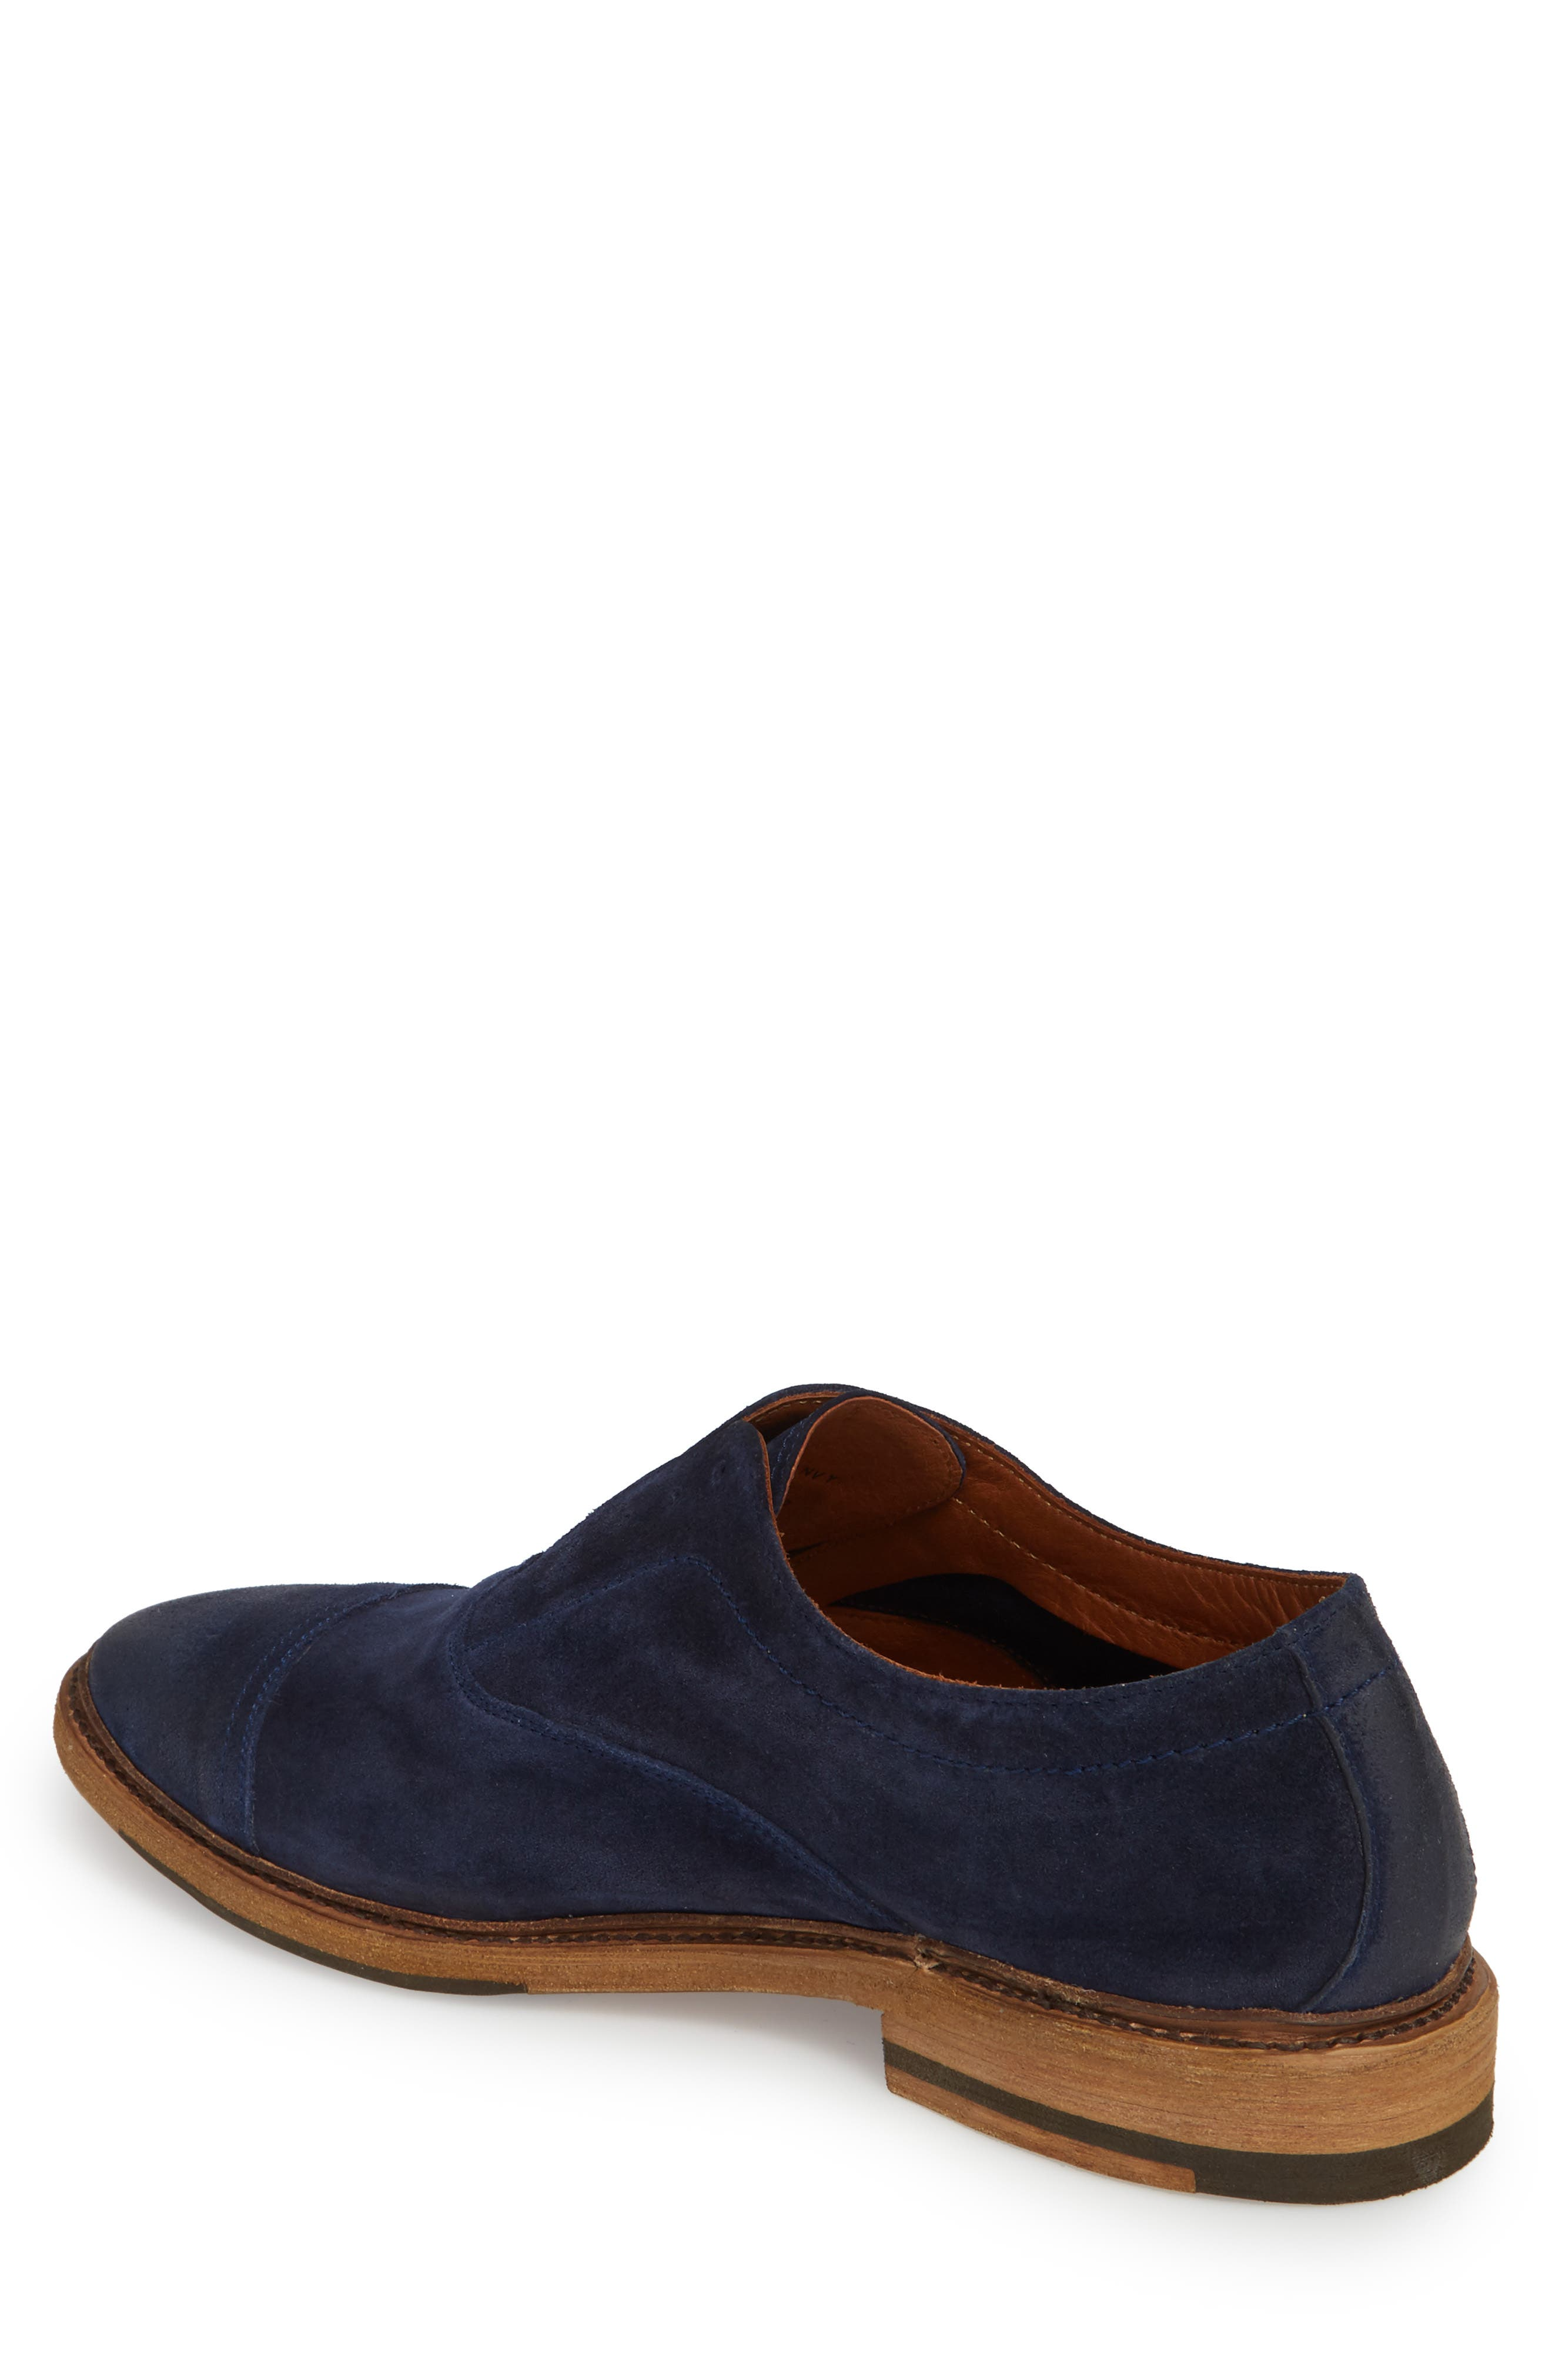 Paul Bal Cap Toe Oxford,                             Alternate thumbnail 6, color,